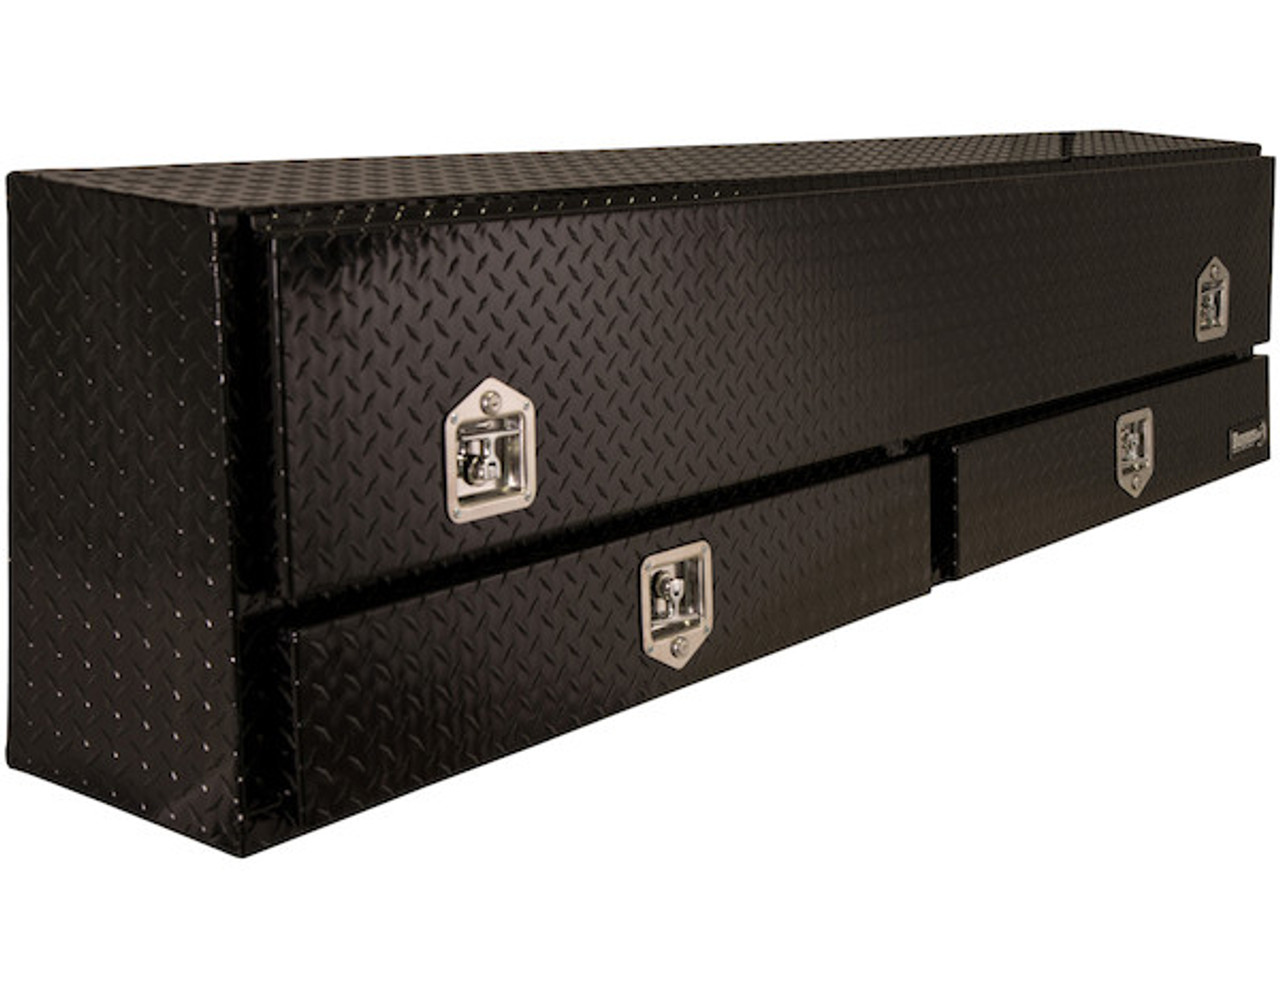 "1725641 BUYERS PRODUCTS BLACK DIAMOND TREAD ALUMINUM CONTRACTOR TRUCK BOX WITH LOWER DRAWERS 21""HX13.5""DX72""W"